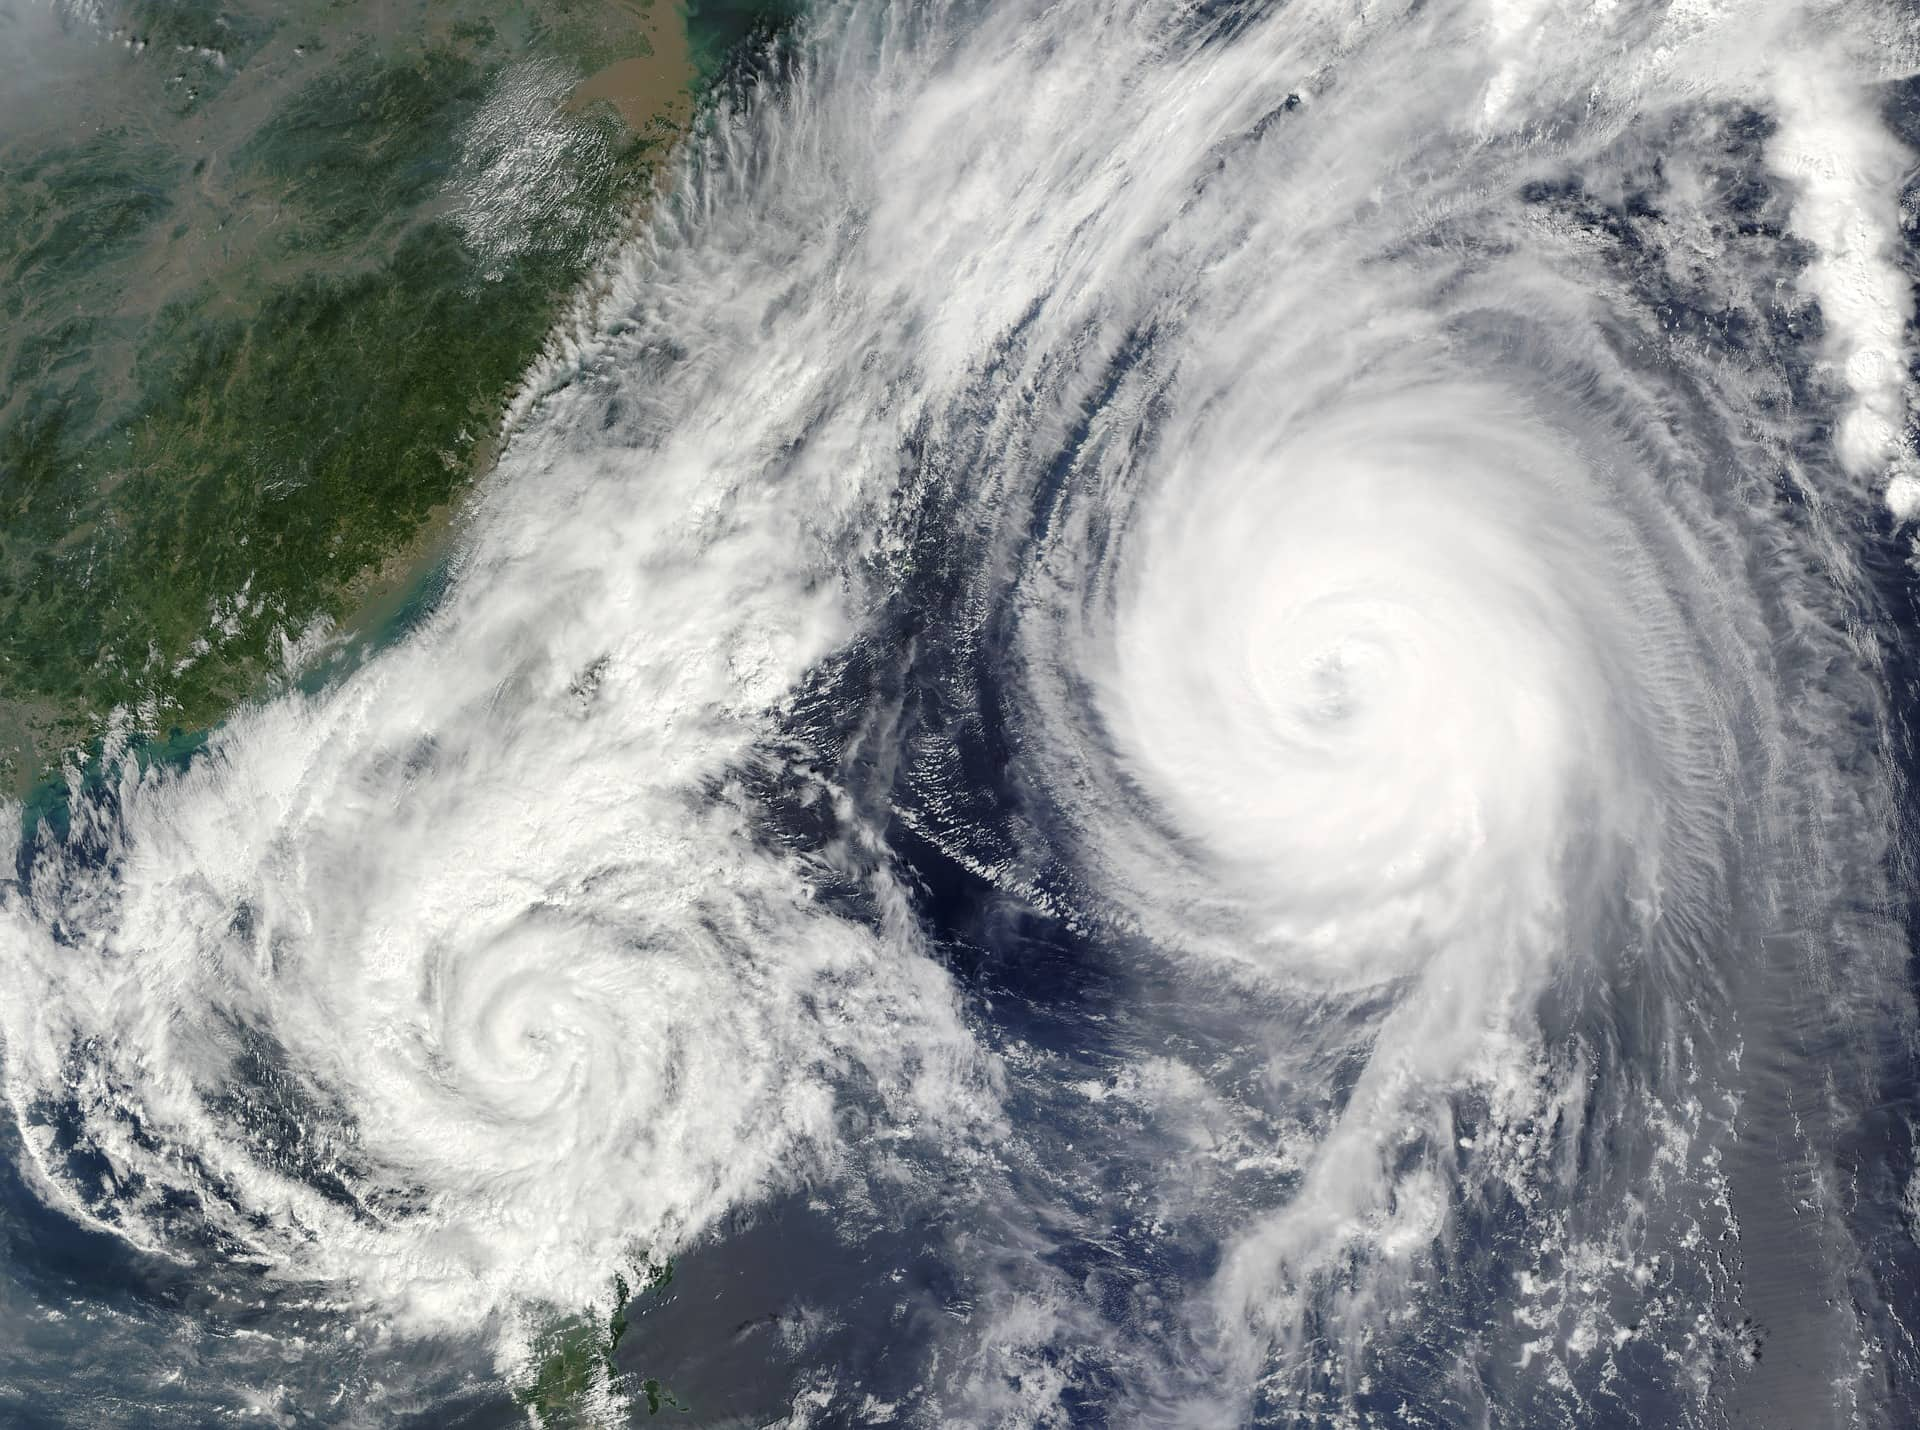 Hurricane viewed from above